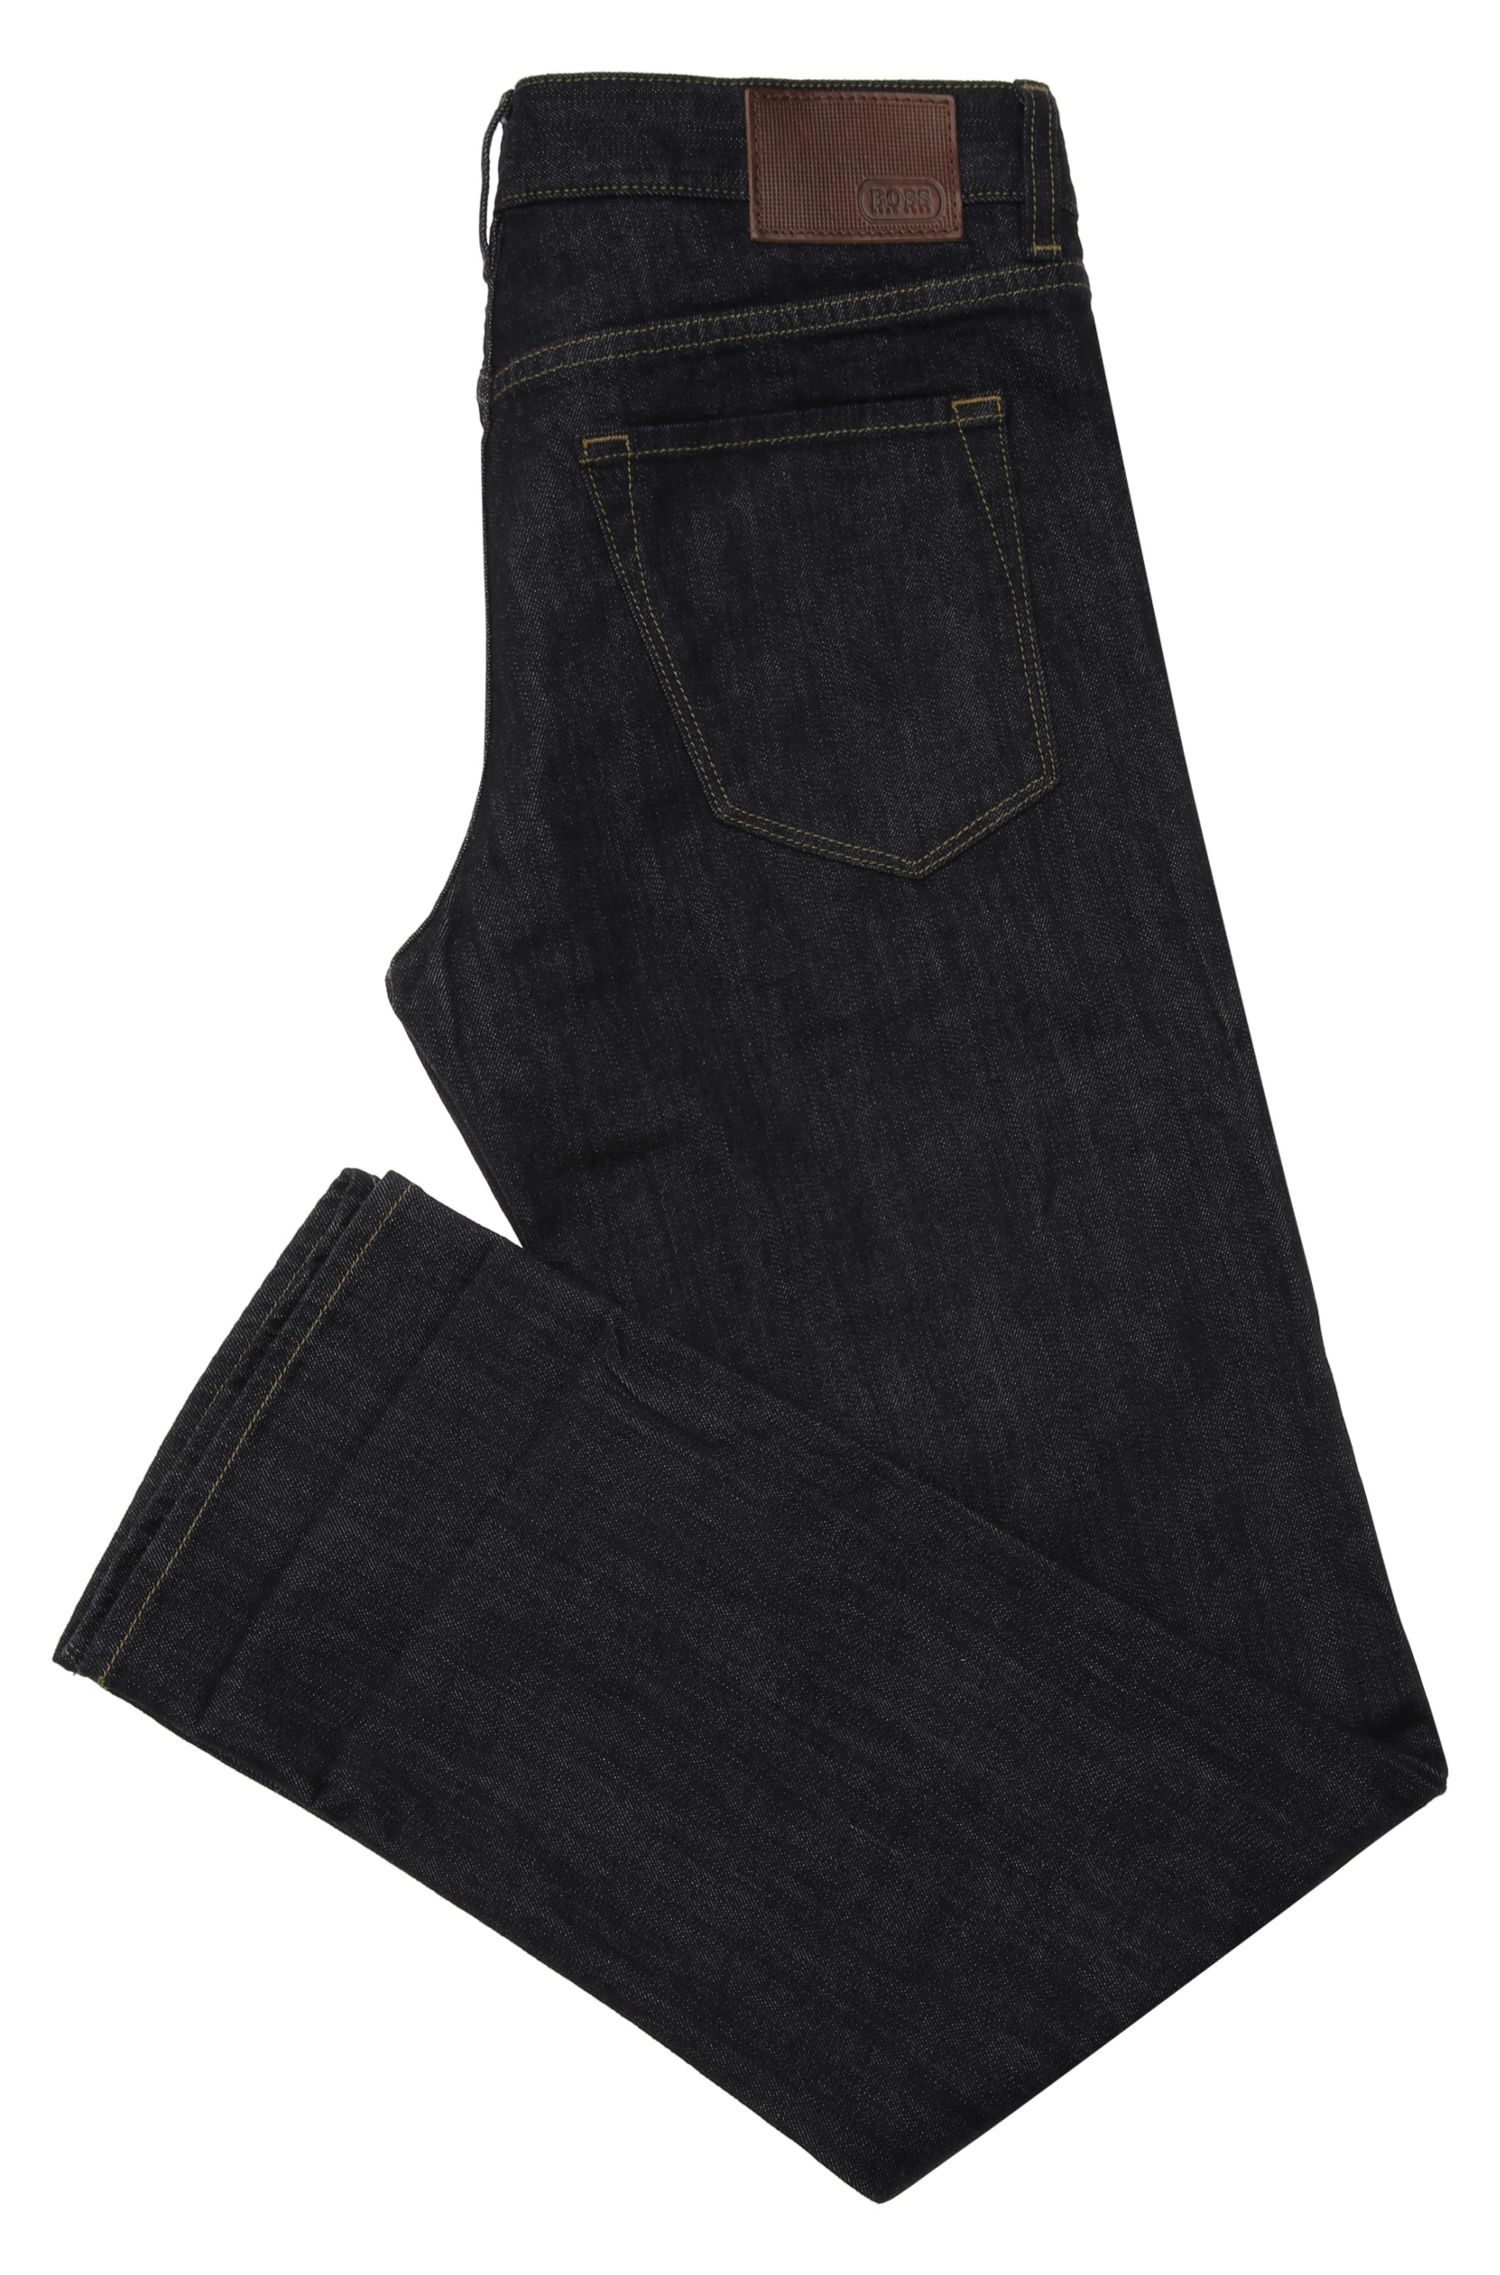 Jeans Regular Fit en coton mélangé extensible : « C-Maine1 »